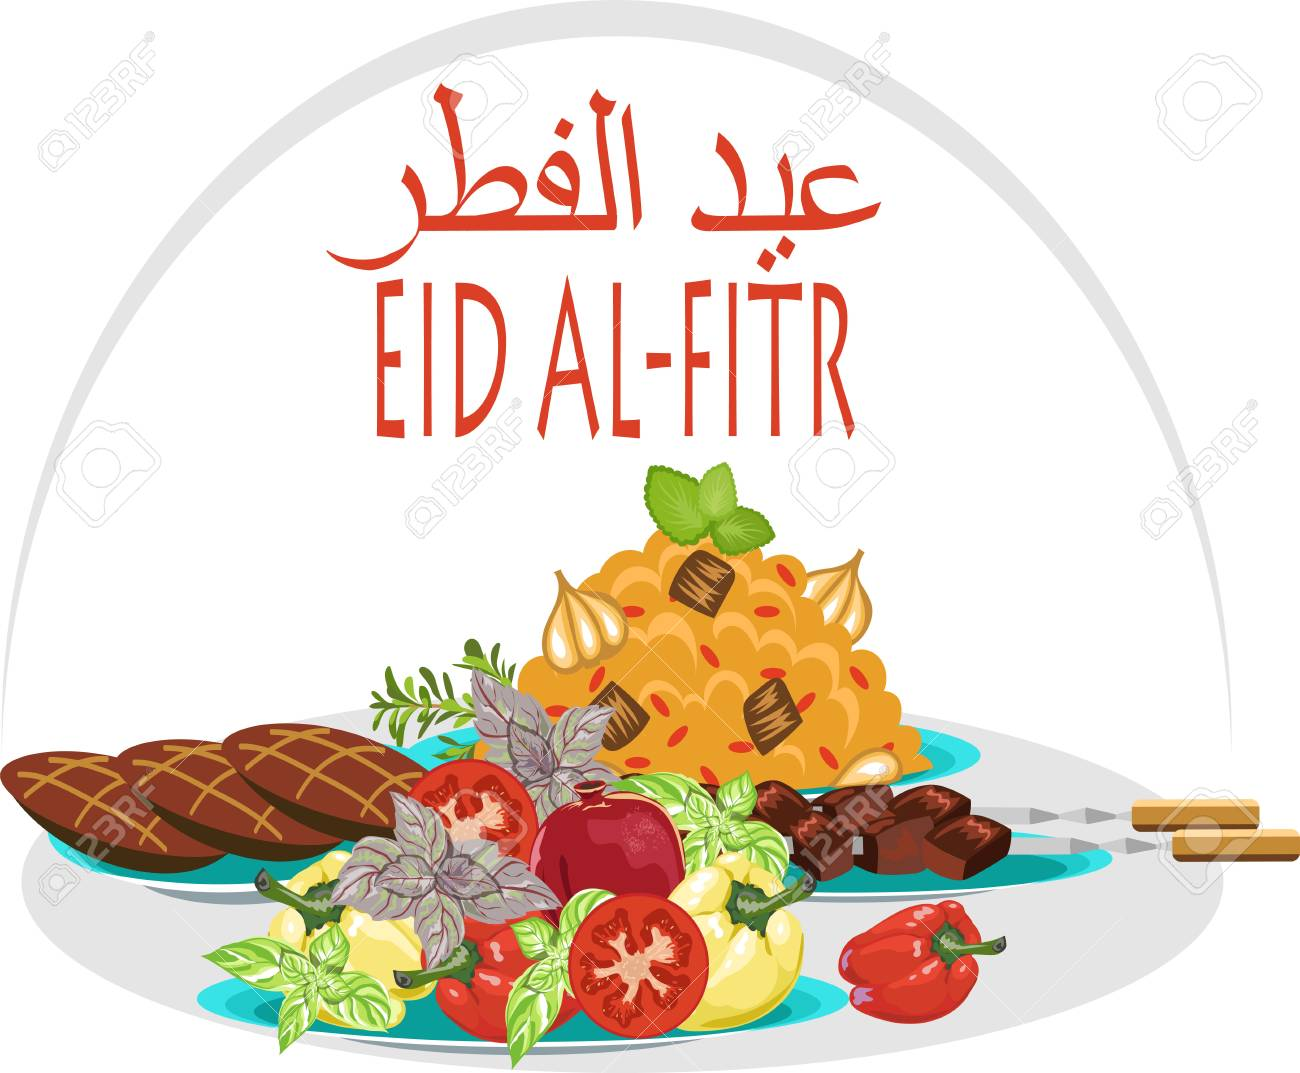 Image result for eid al fitr clipart